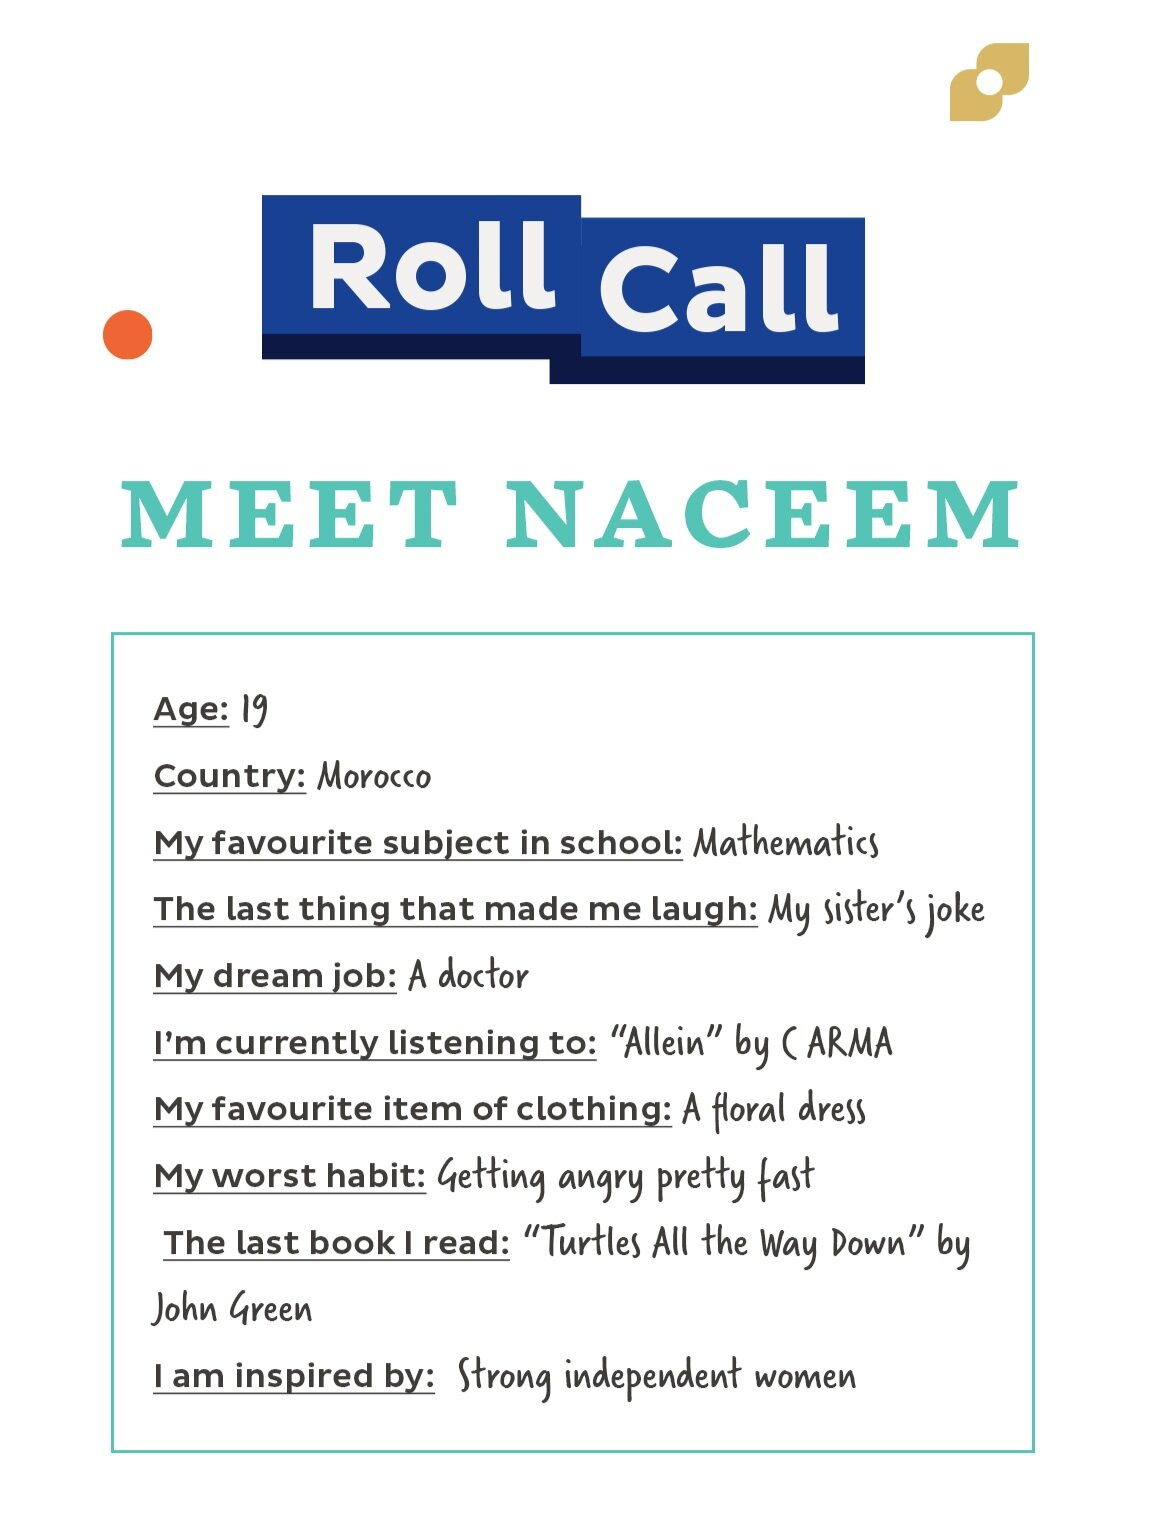 Naceem+roll+call2.jpg